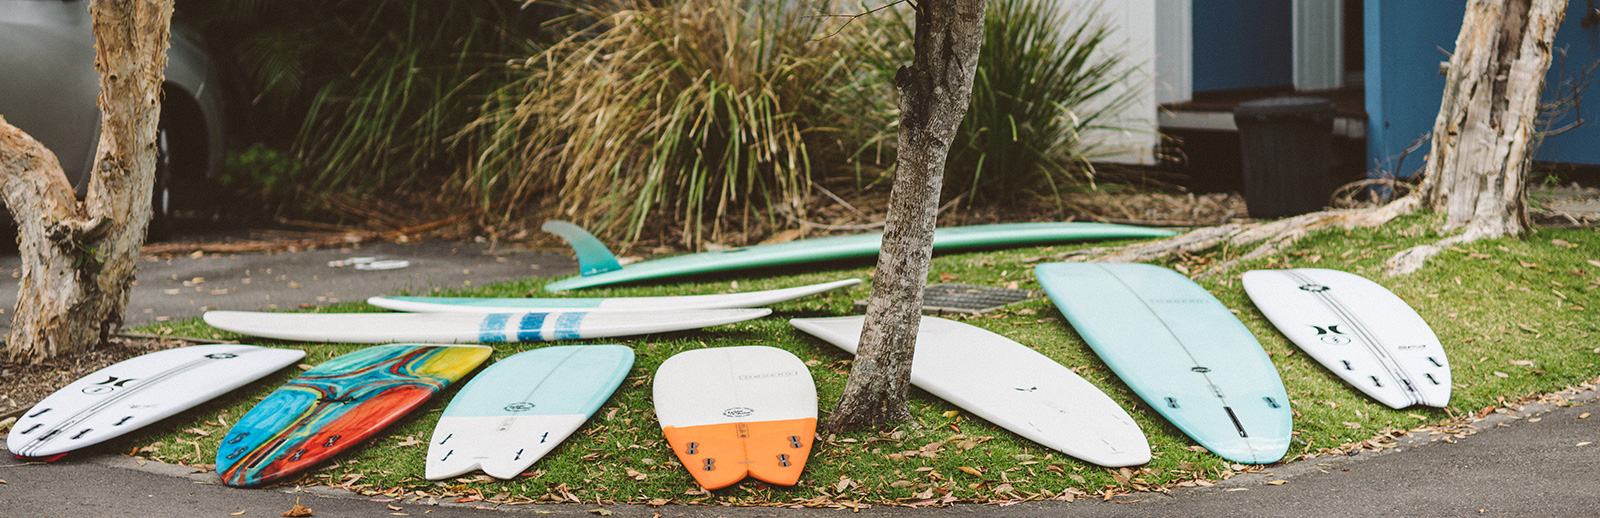 Global Surf Industries - Product Registration